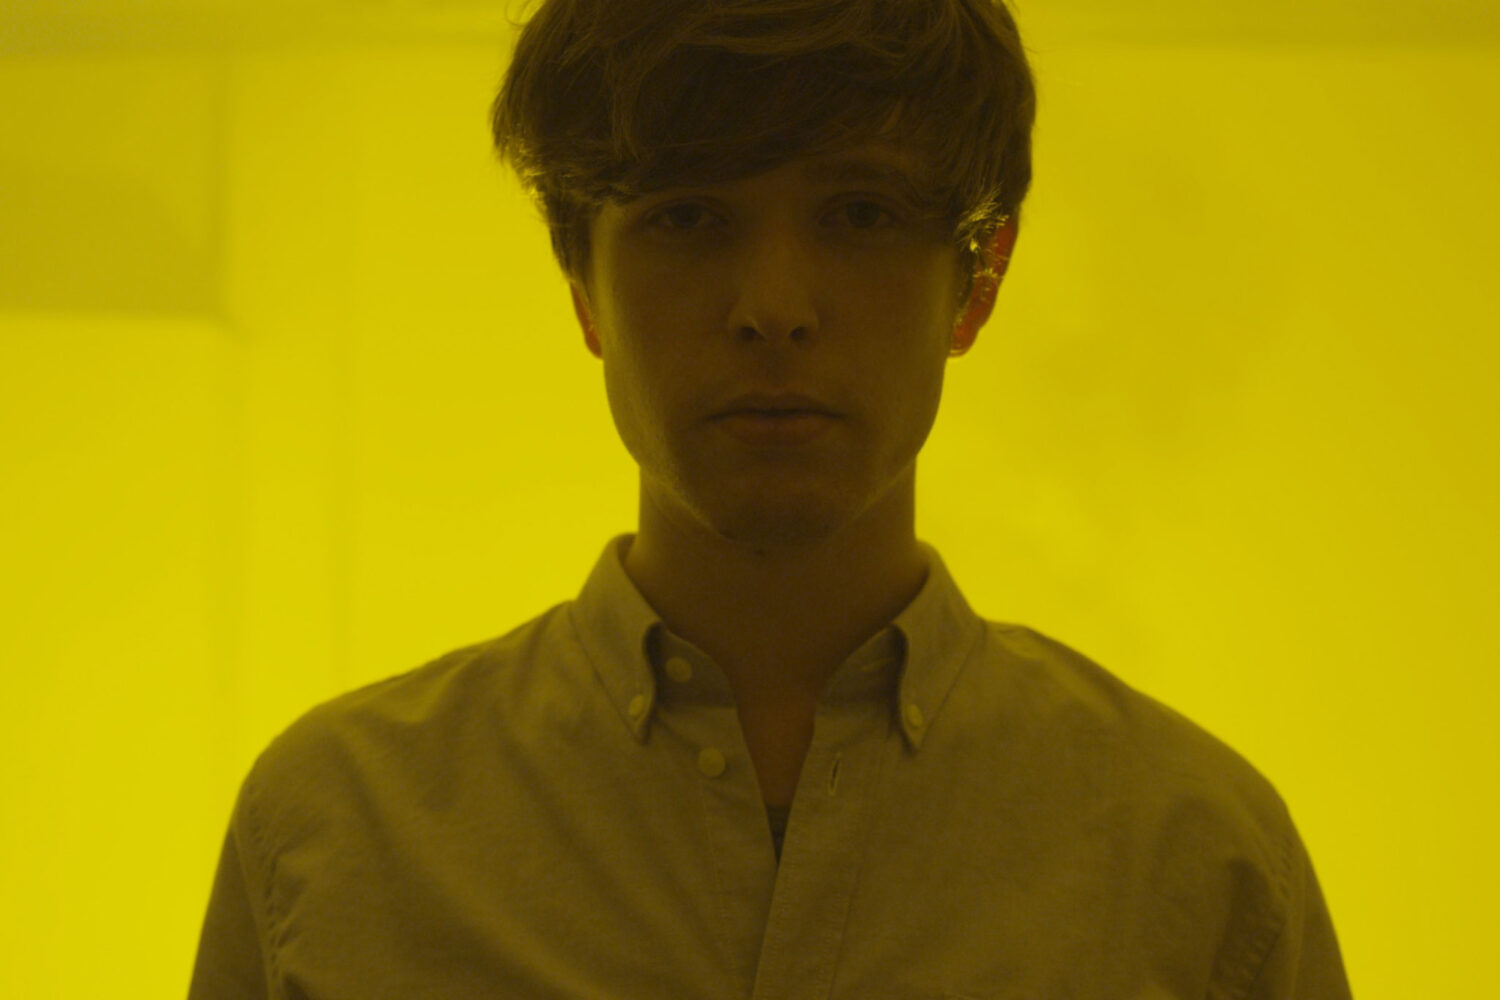 James Blake breaking his 'Radio Silence' is set to be one of 2016's defining moments